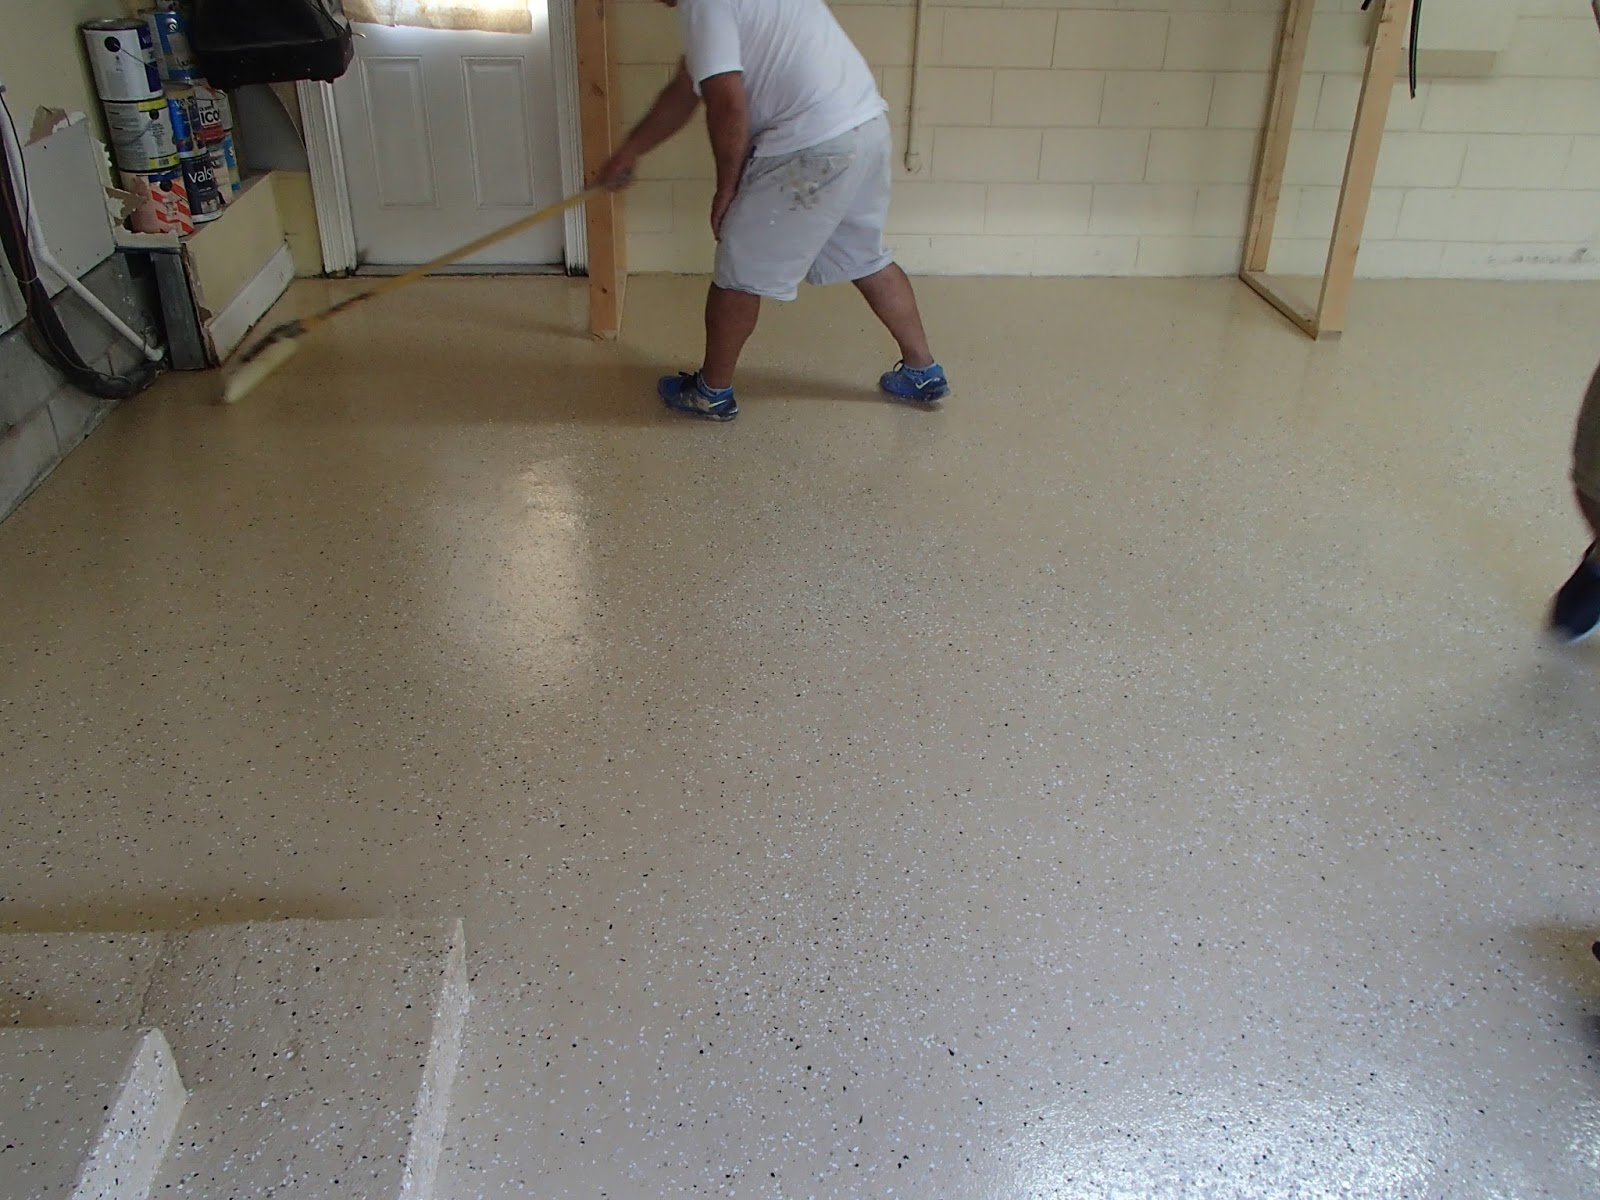 Legacy garage floors garage floor upgrade windermere florida call today for your free consultation and estimate for epoxy granite flooring racedeck tile porcelain tile metallic epoxy polyaspartic and polyurea dailygadgetfo Images